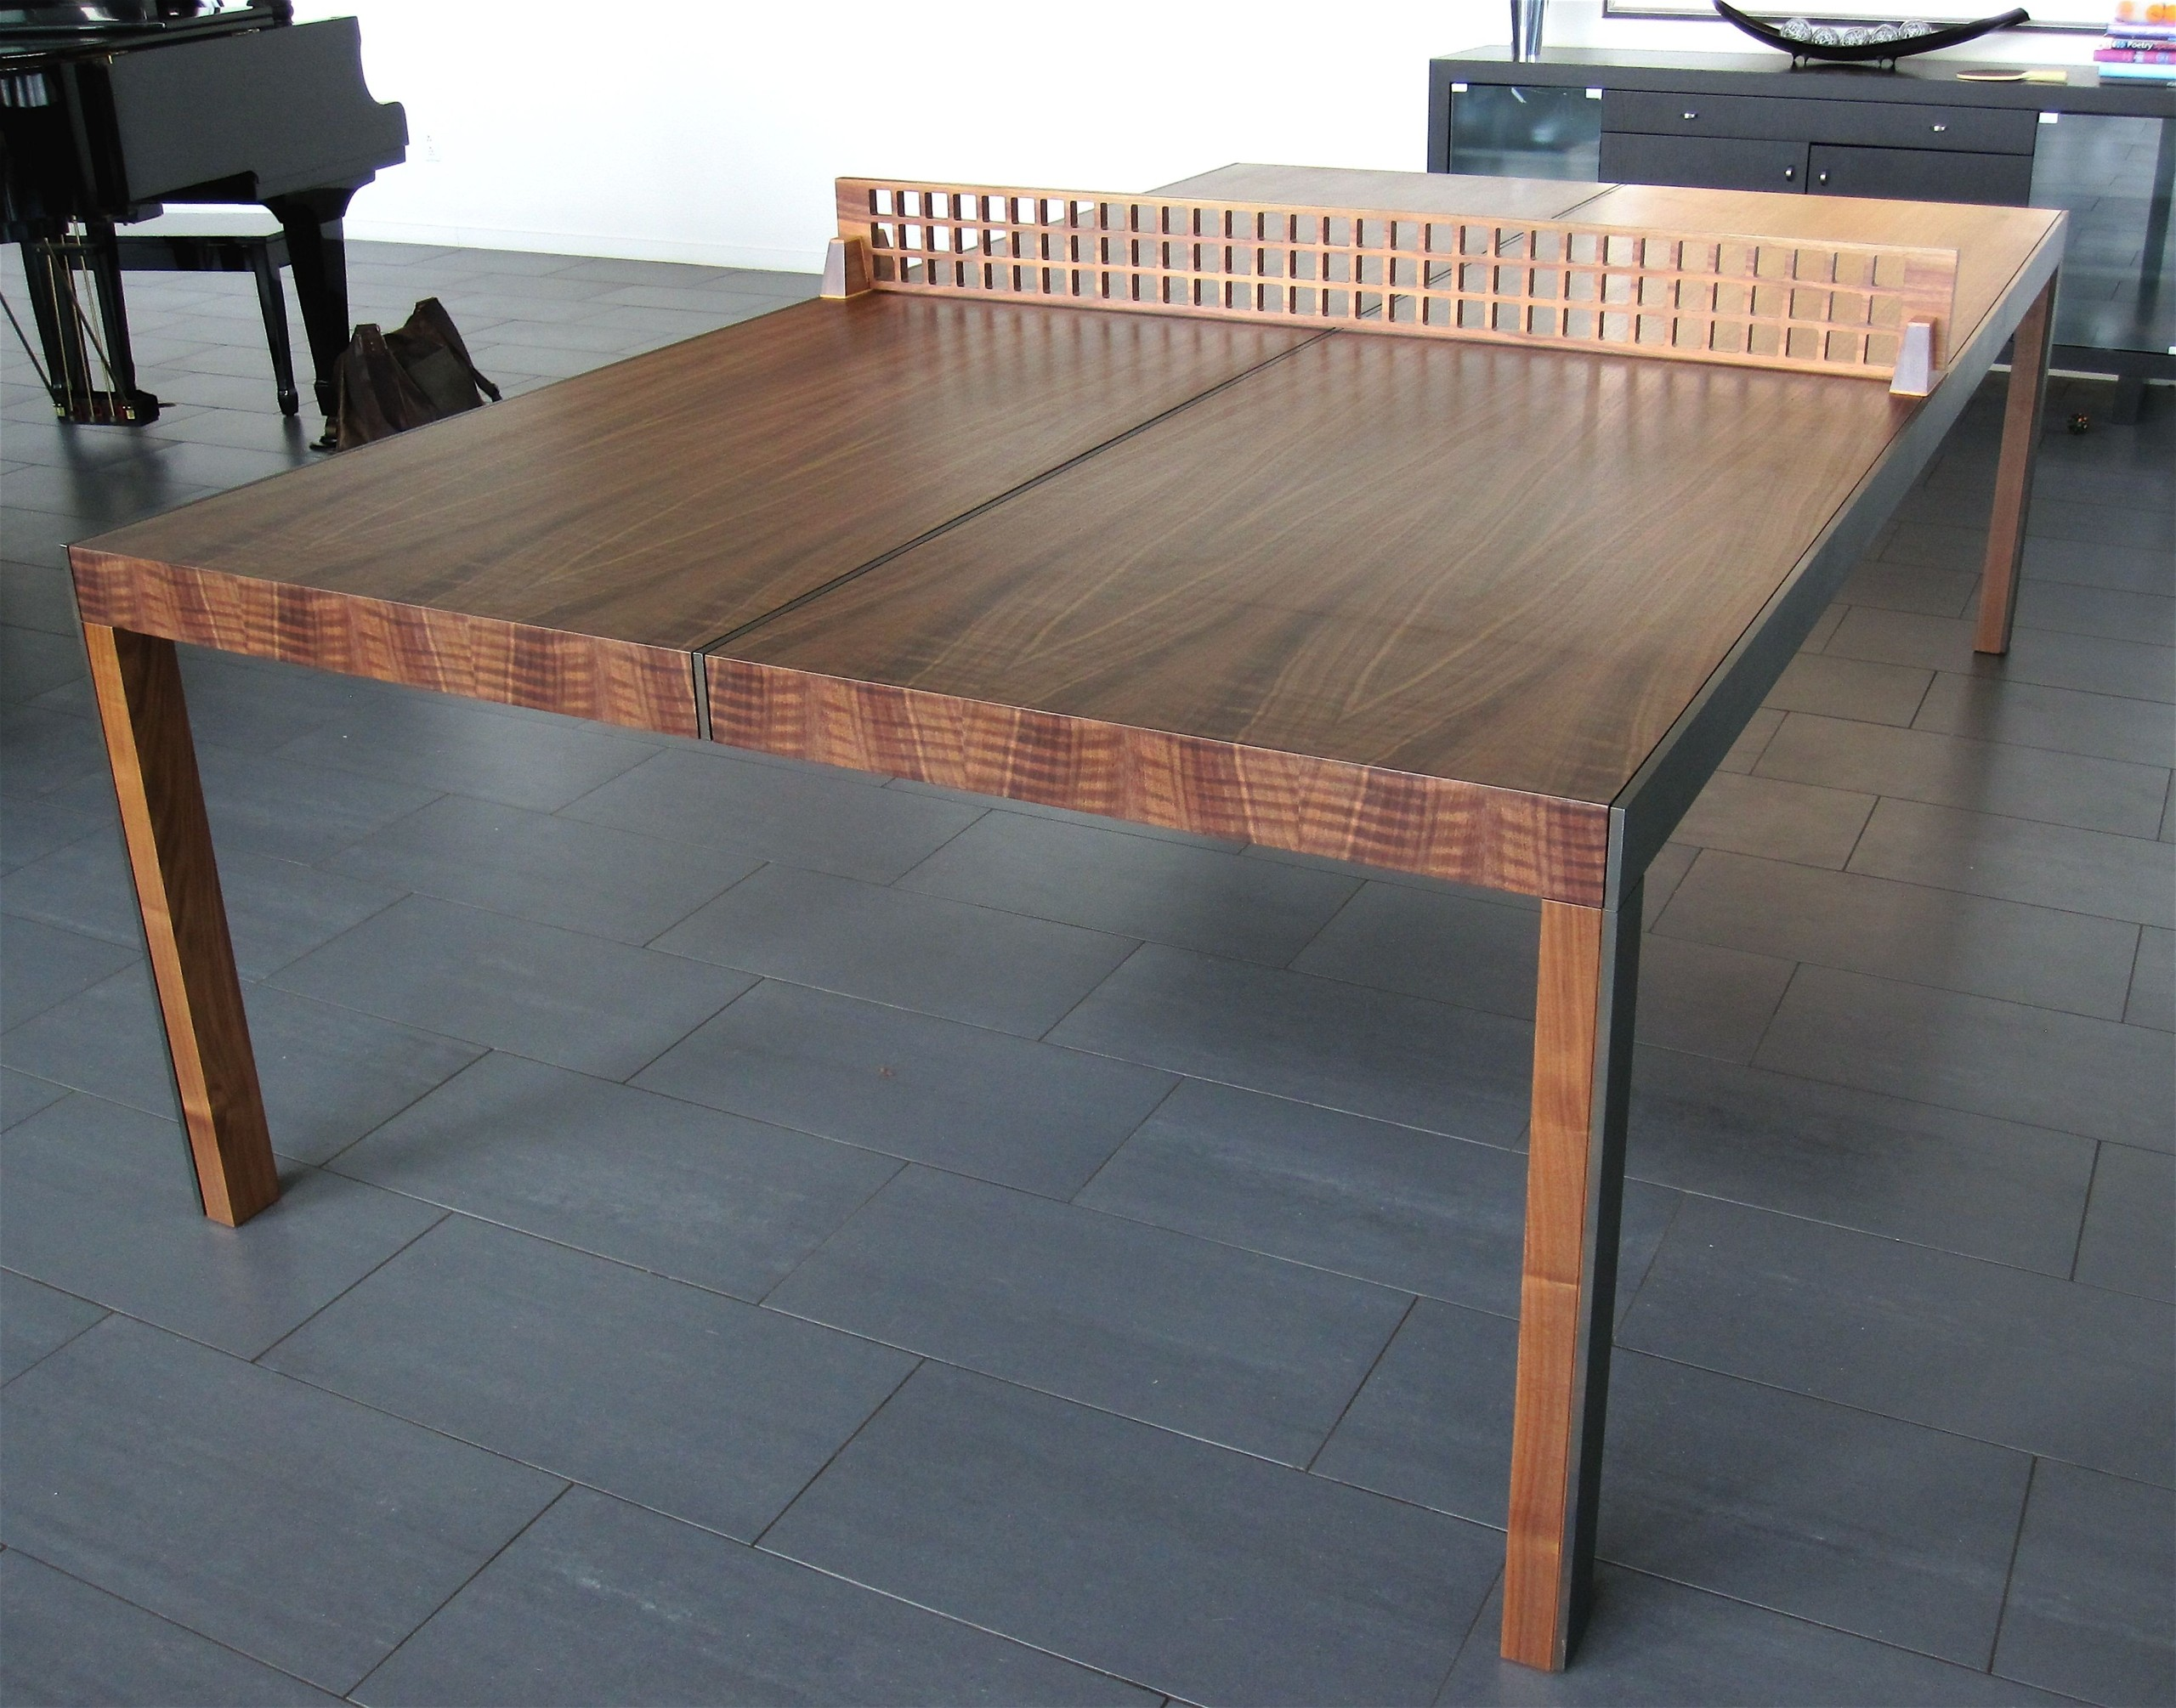 Convertible kitchen table  sc 1 st  Foter & Convertible Ping Pong Table - Ideas on Foter